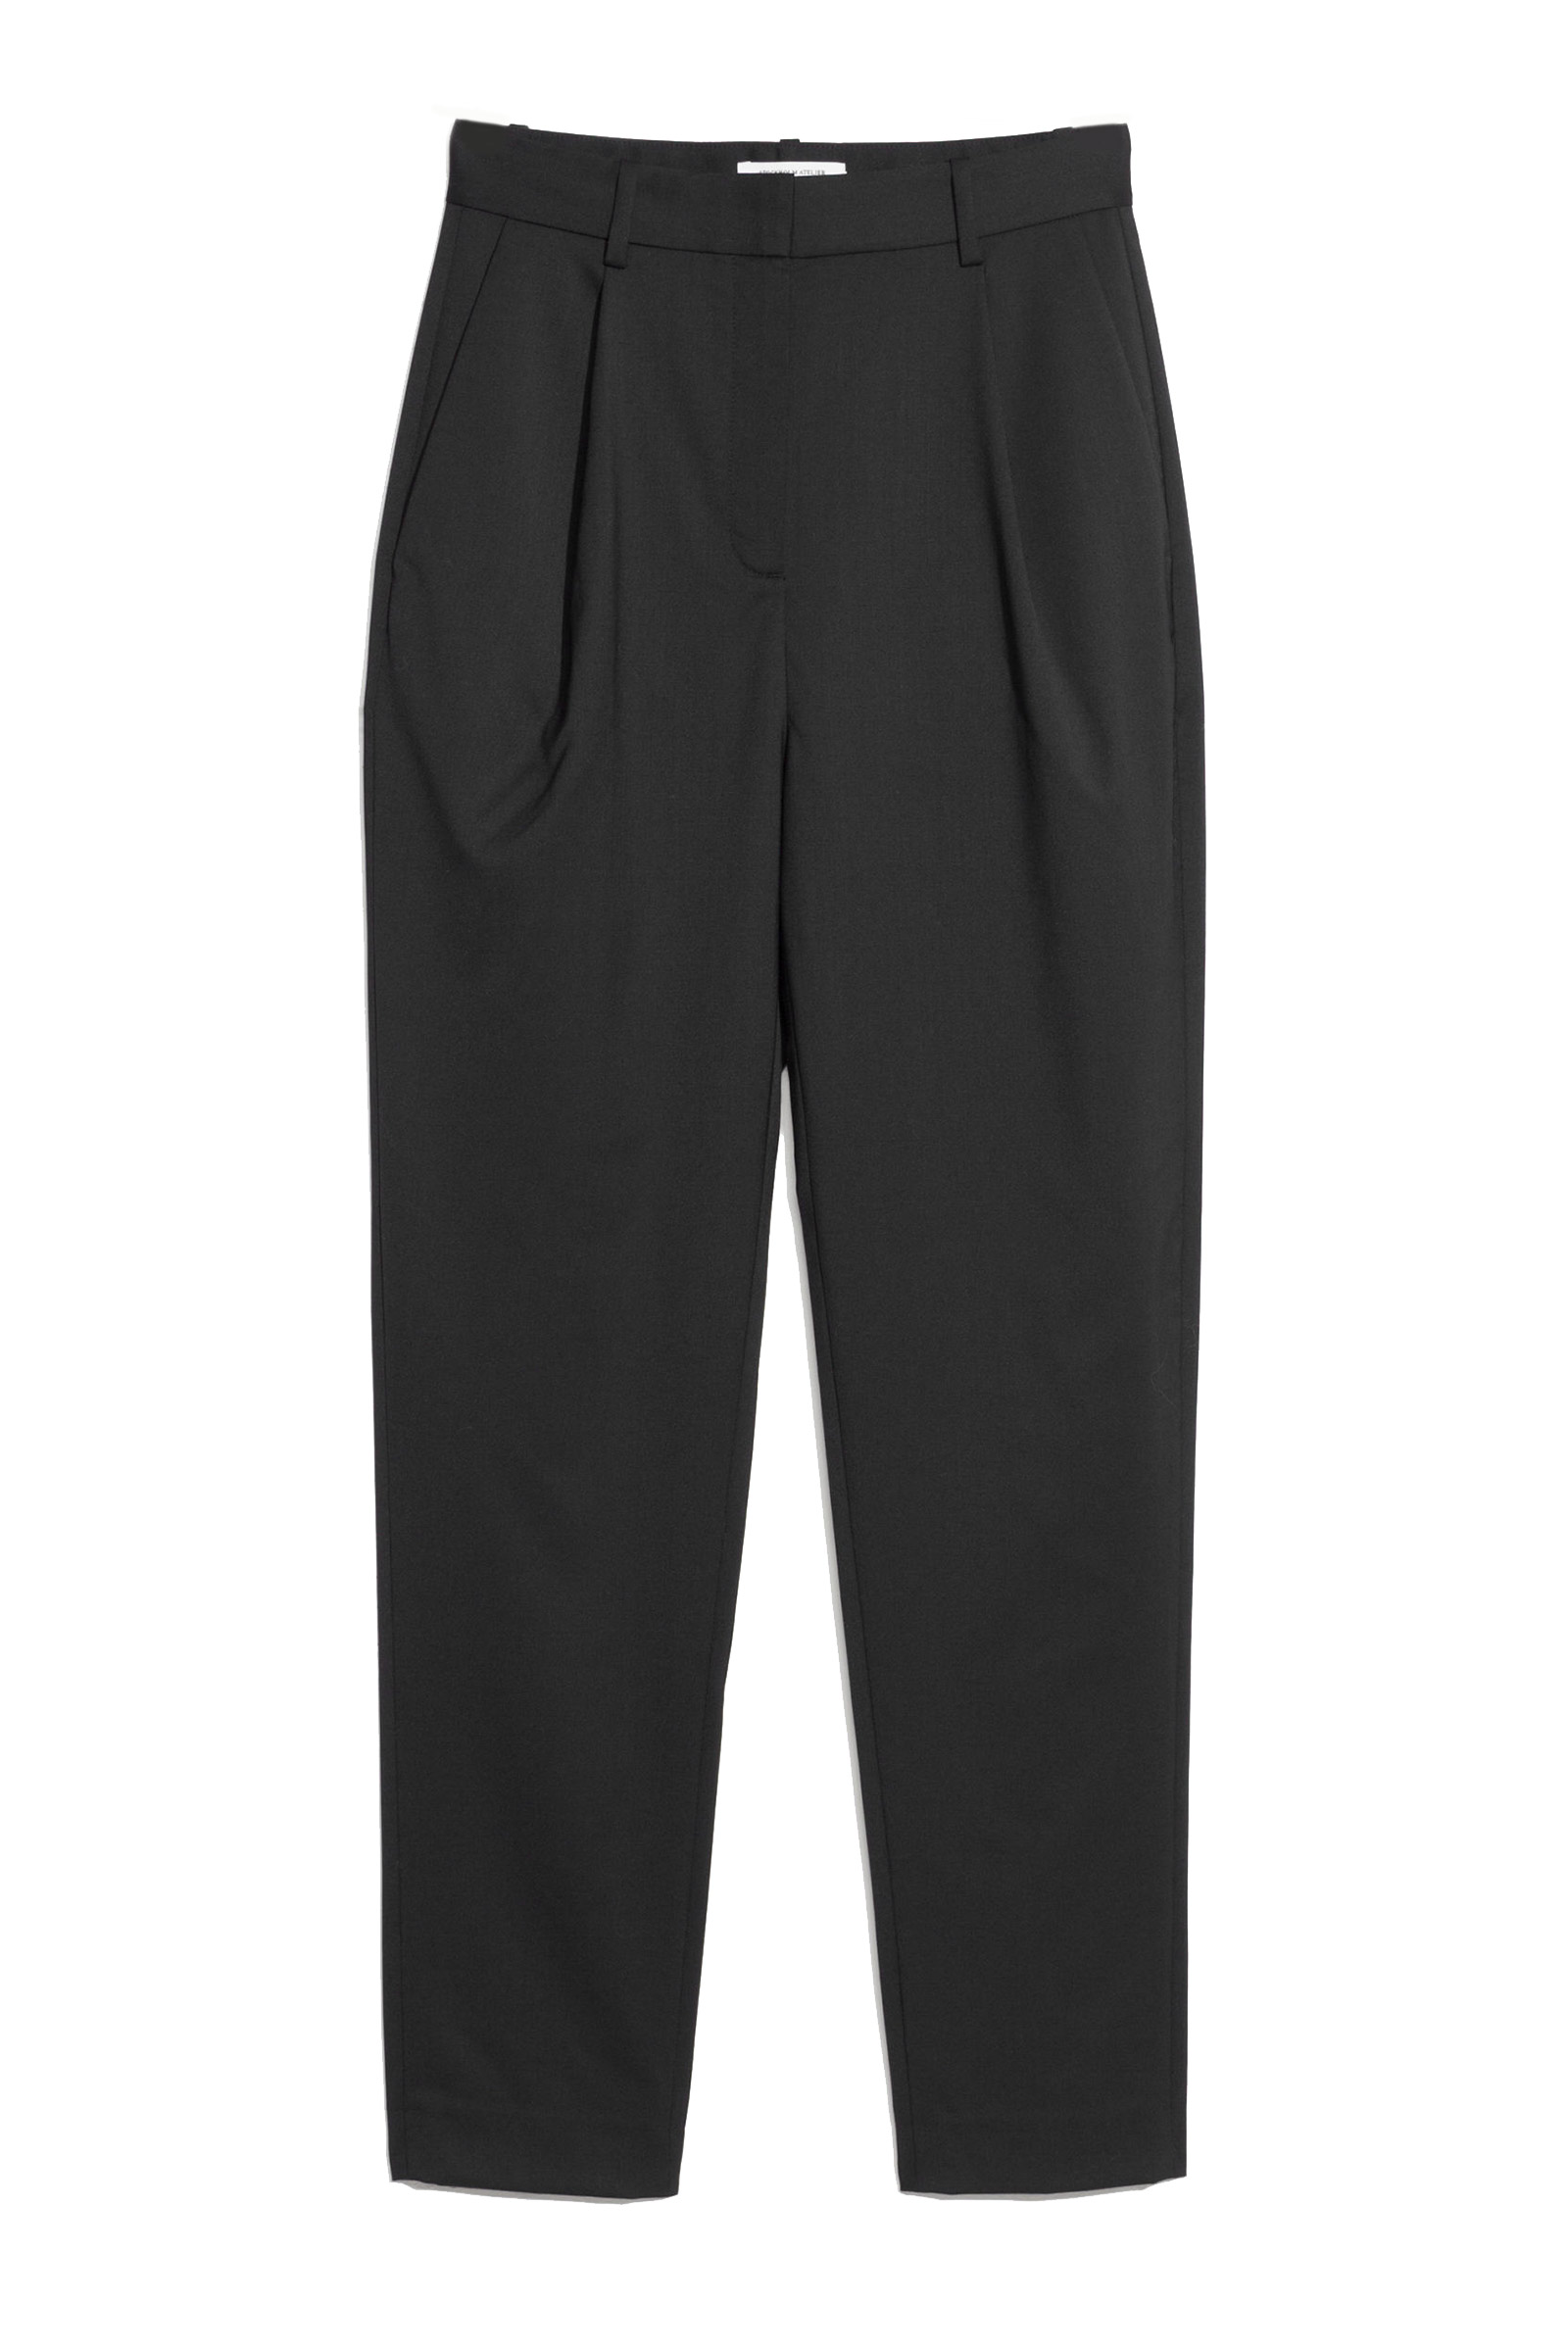 Click to Buy & Other Stories Tapered Black Trousers